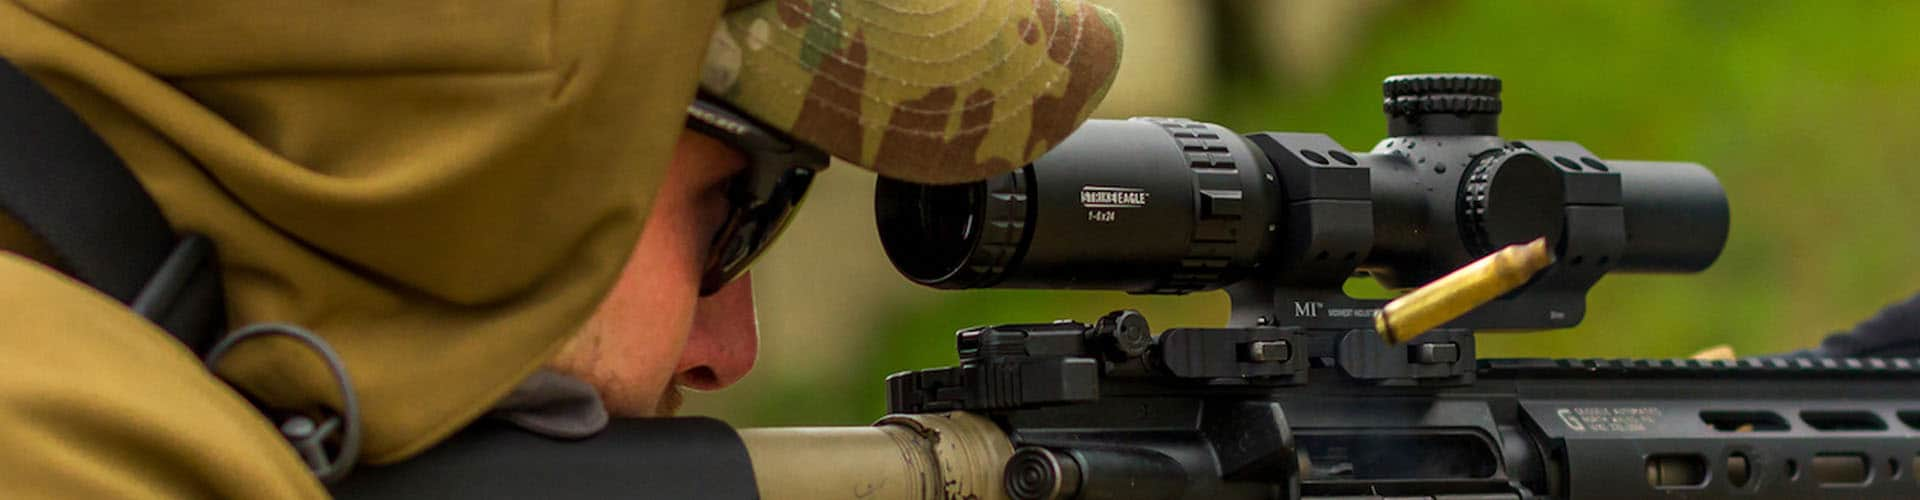 Vortex Optics Strike Eagle 1-6×24 Review